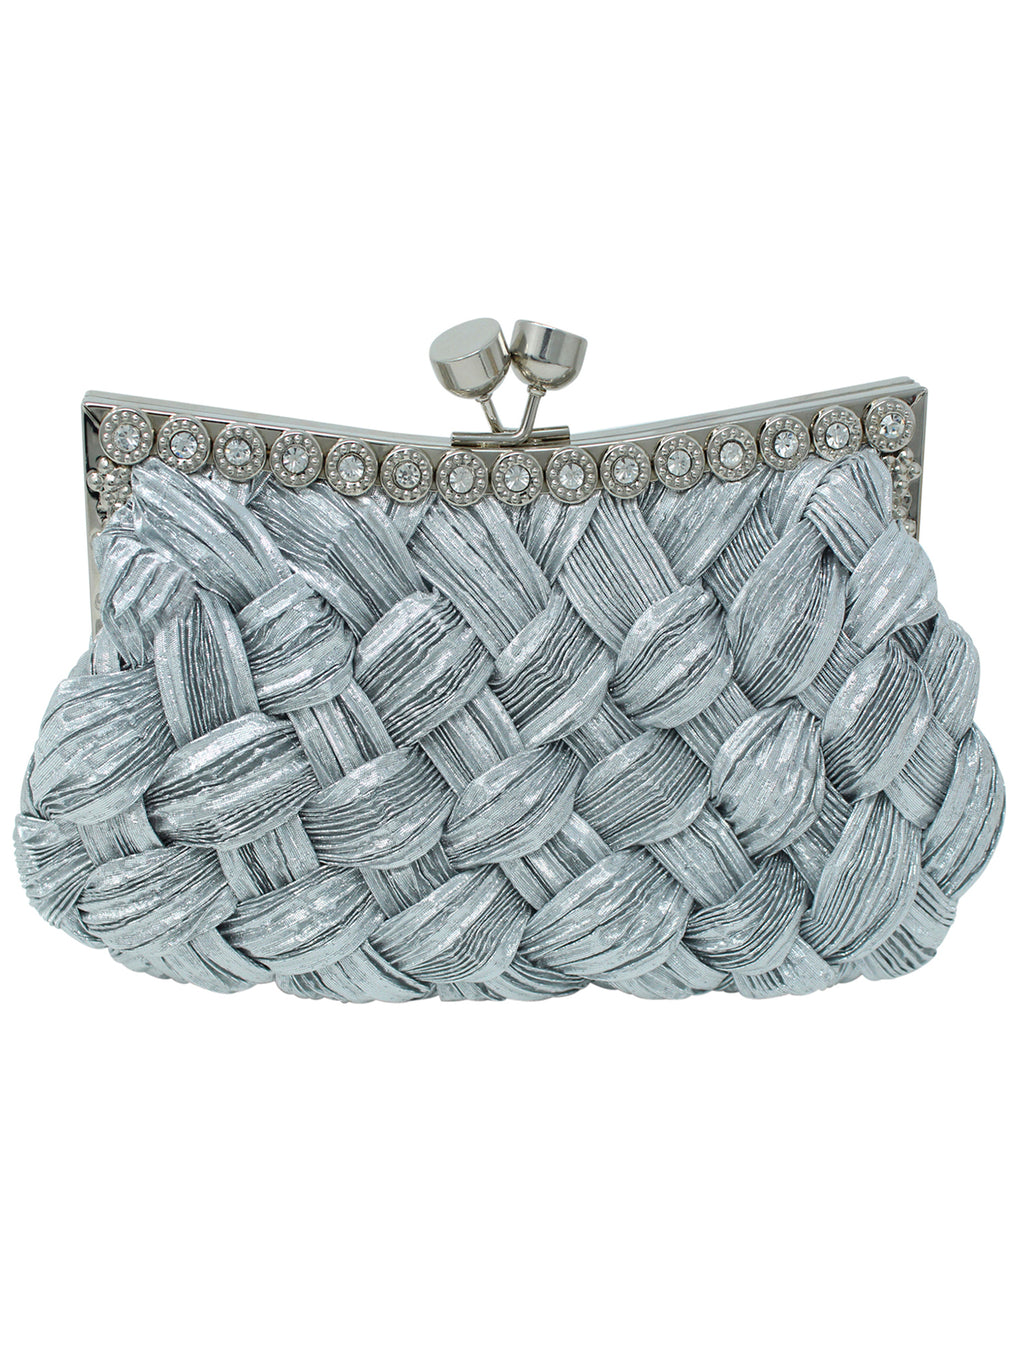 Woven Braid Clutch Purse With Rhinestone Trim